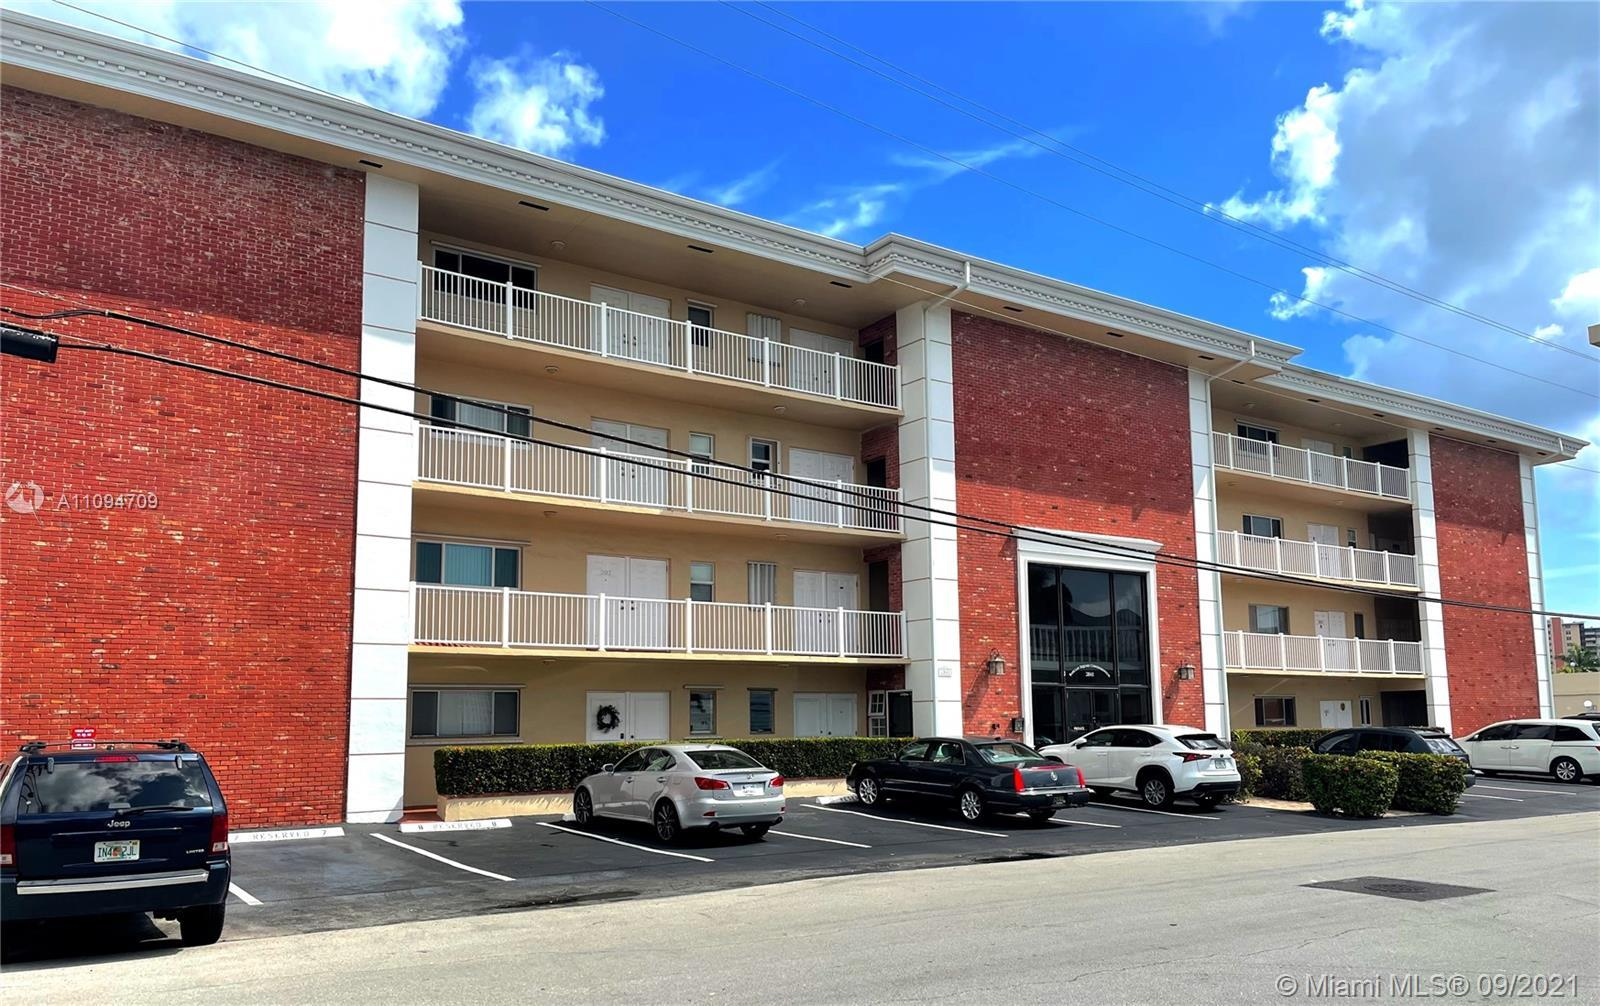 Barclay Square condo 2/2  in Coral Ridge! Wow! Amazing potential Large 1000 SF overlooking docks wit